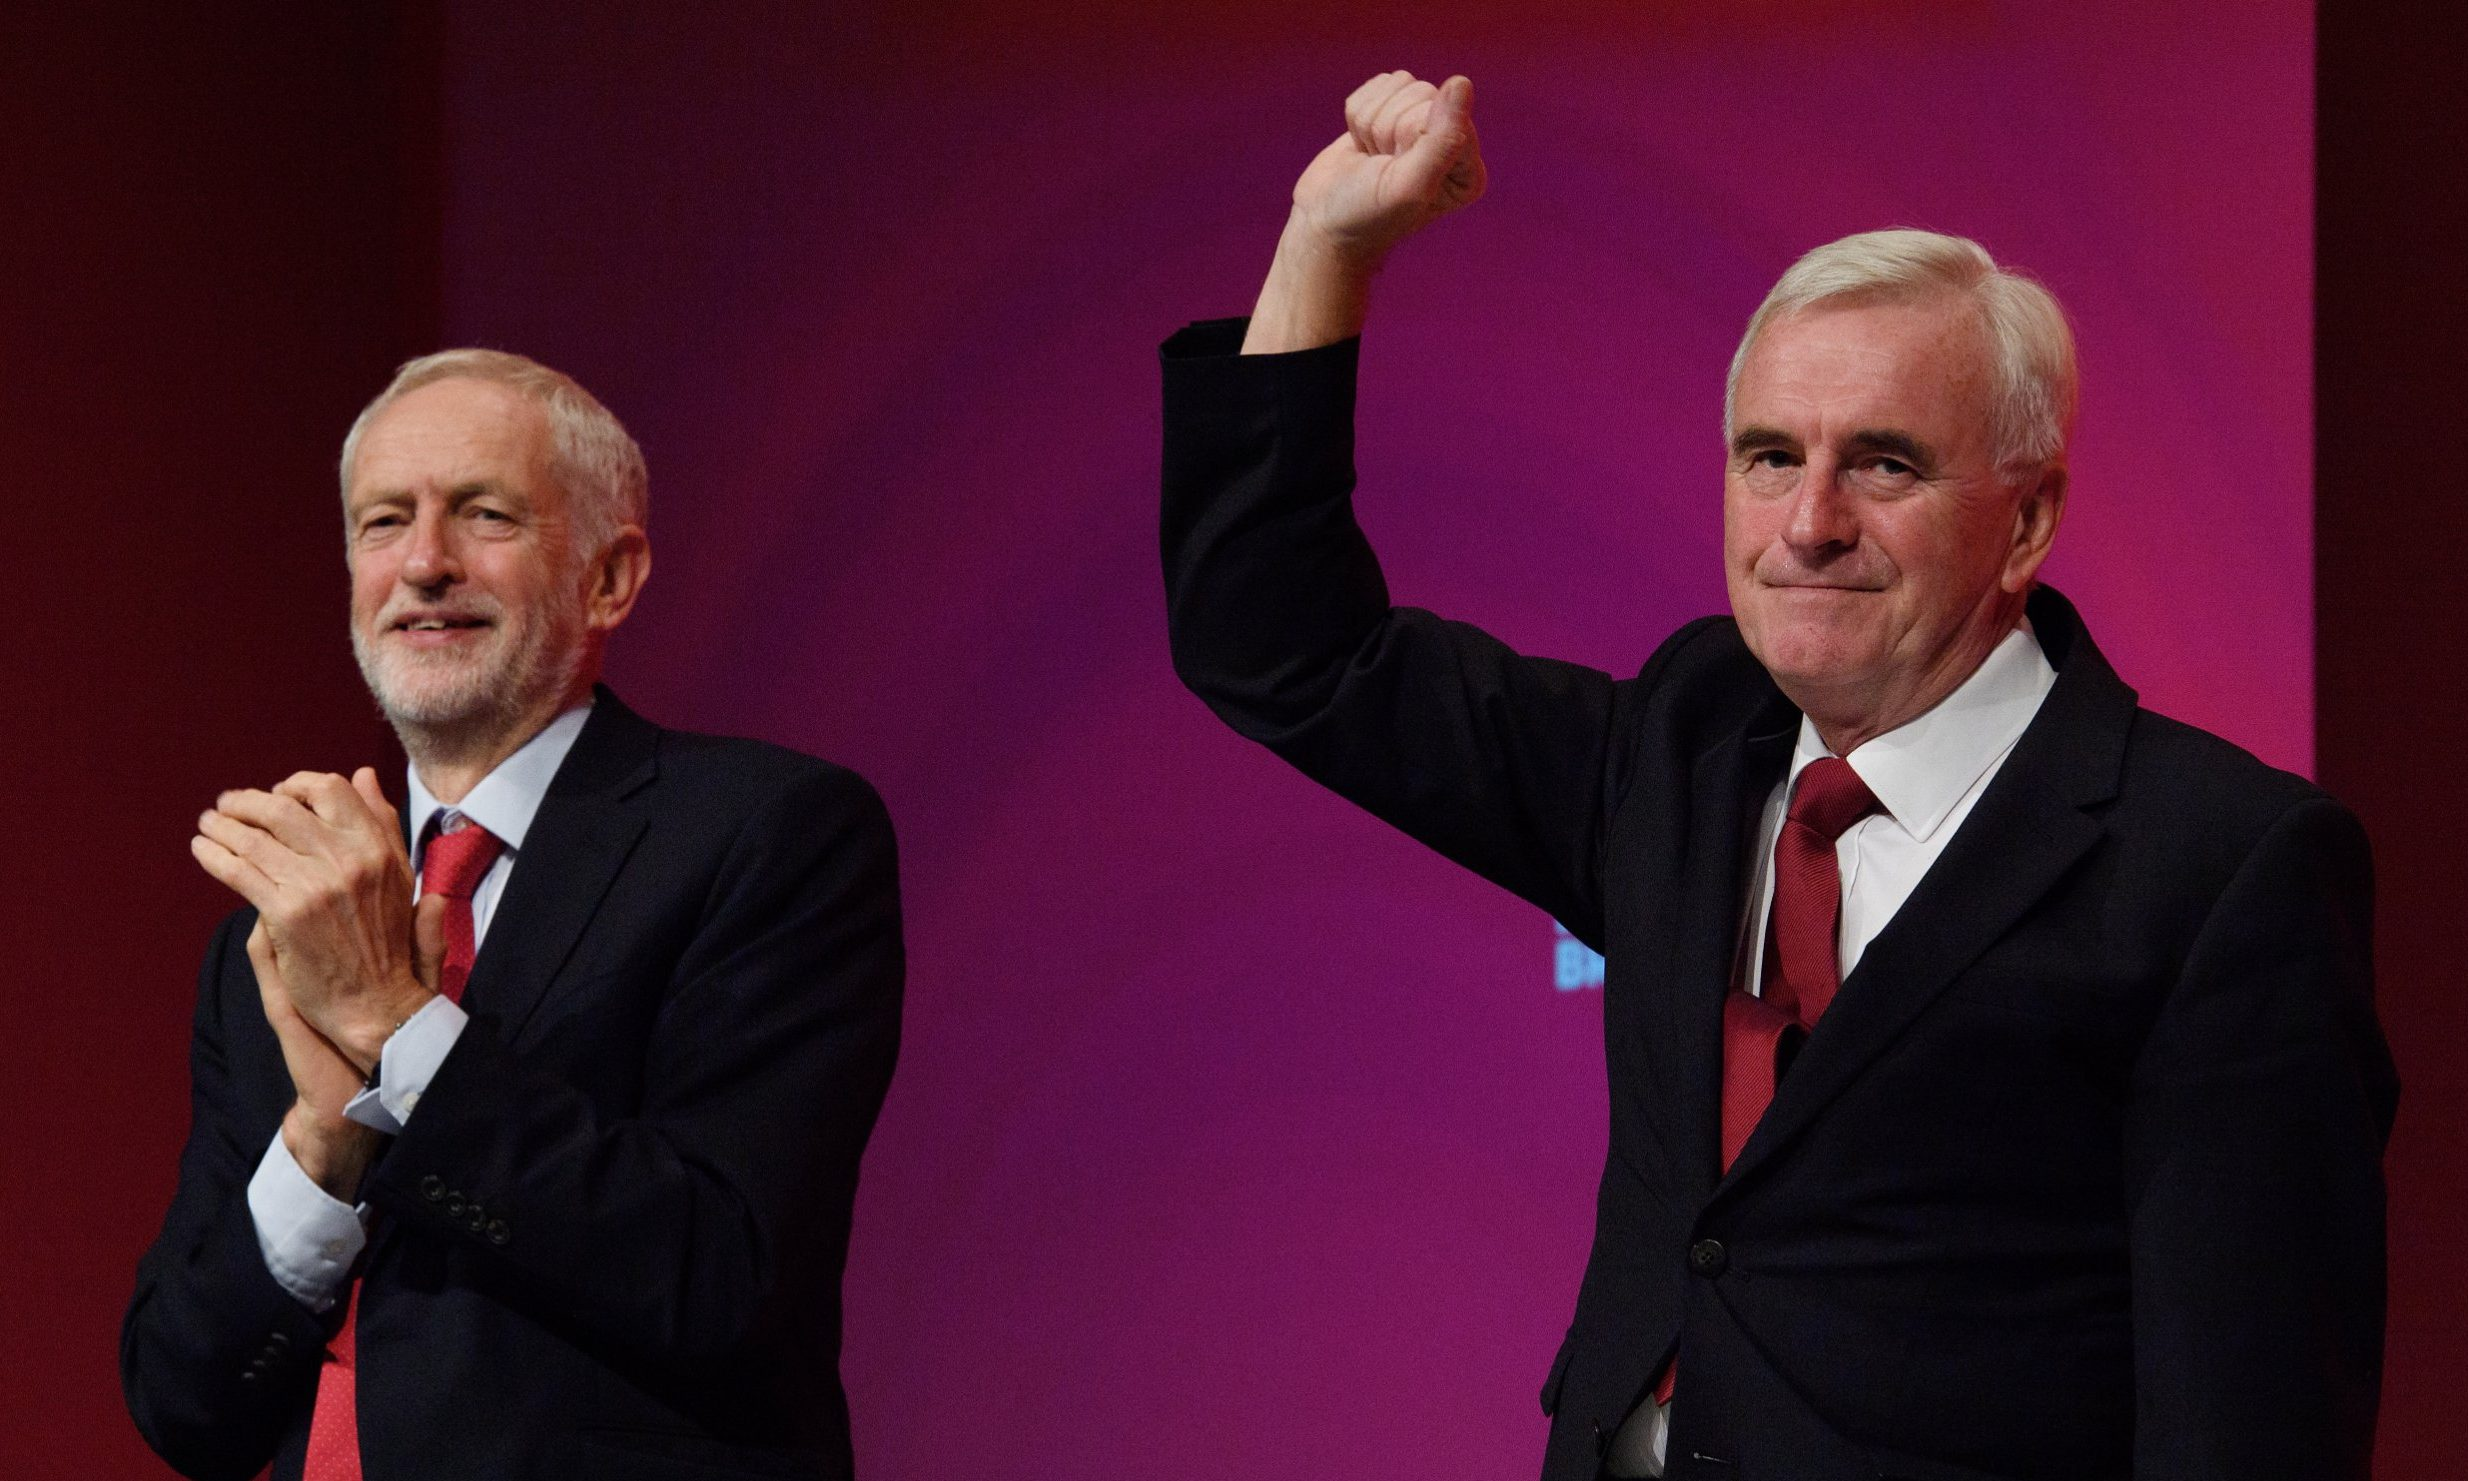 LIVERPOOL, ENGLAND - SEPTEMBER 24: Labour Party leader Jeremy Corbyn looks on as Shadow Chancellor of the Exchequer John McDonnell receives applause following his address to delegates in the Exhibition Centre Liverpool during day two of the annual Labour Party conference on September 24, 2018 in Liverpool, England. Labour's official slogan for the conference is ??Rebuilding Britain, for the many, not the few??. (Photo by Leon Neal/Getty Images) ***BESTPIX***